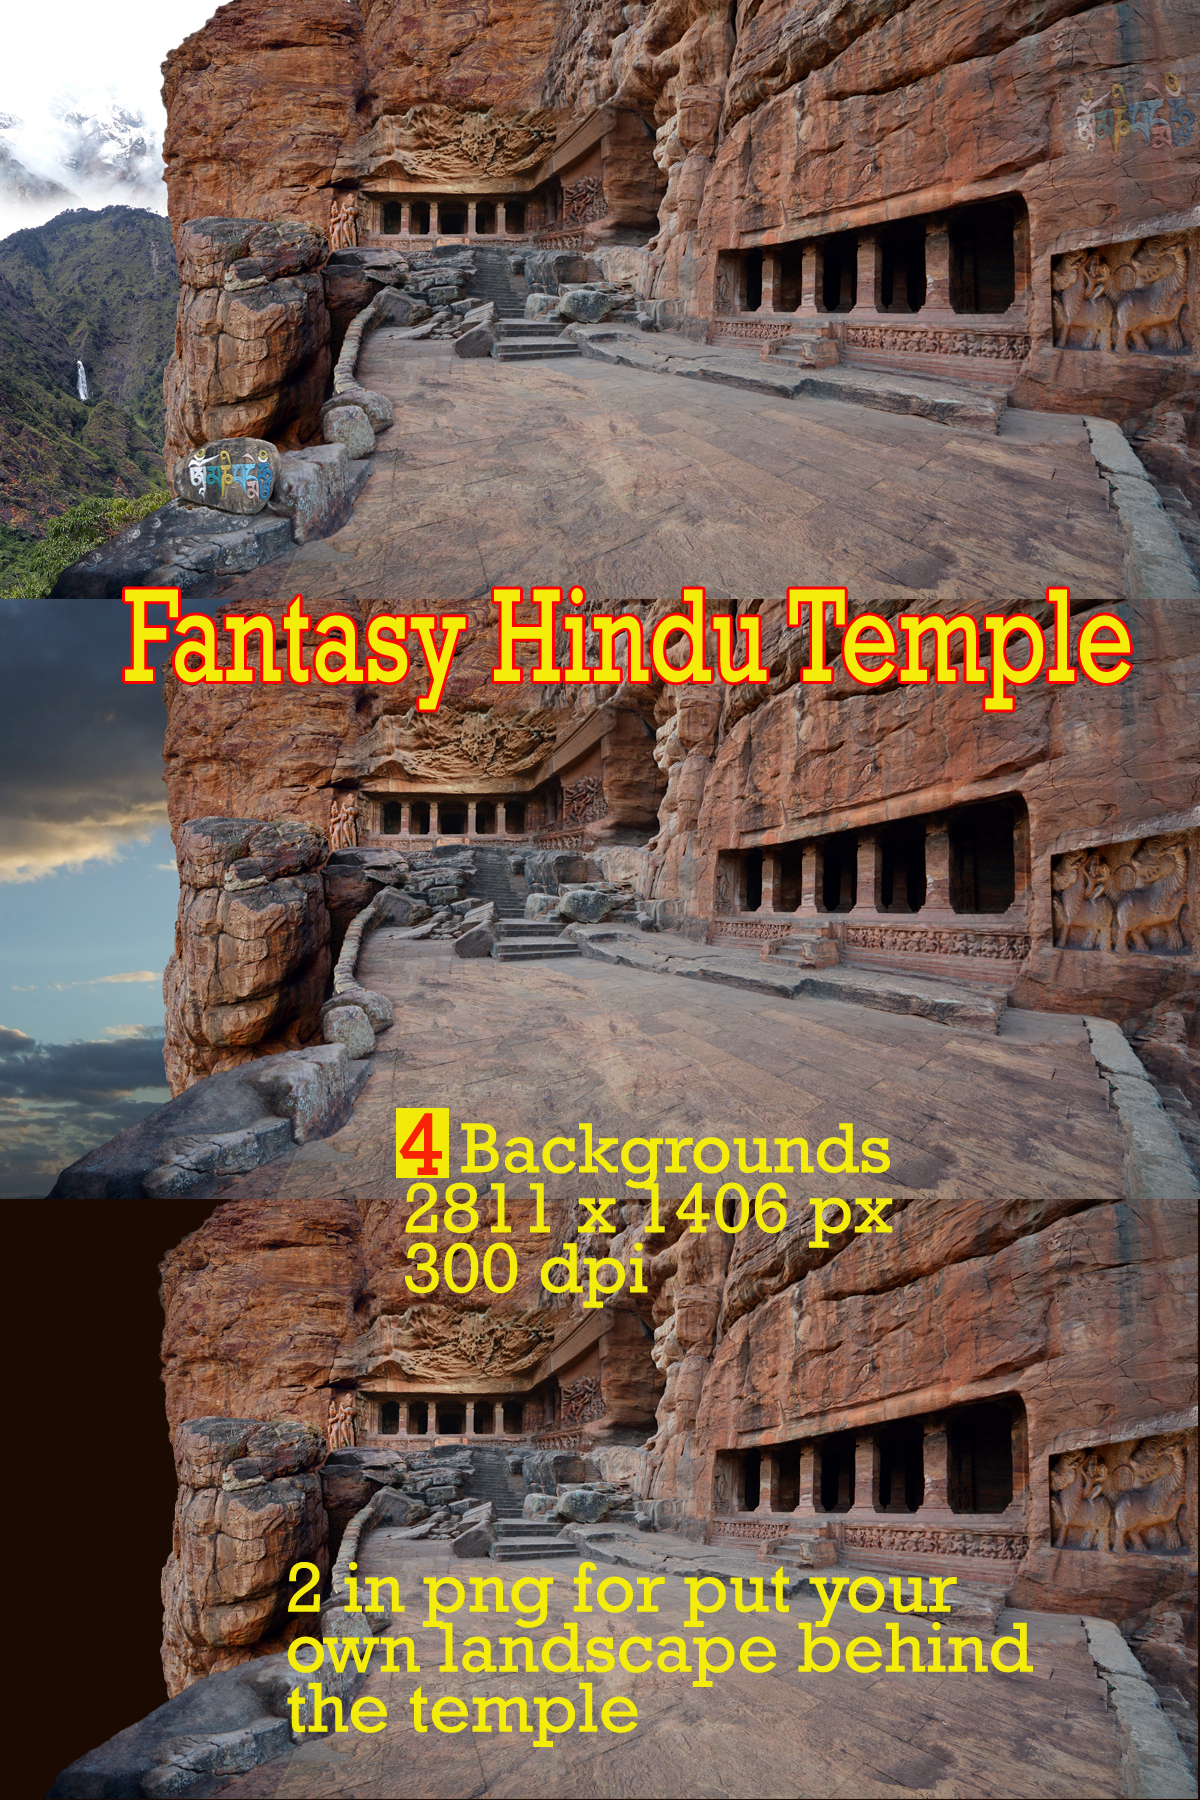 BACKGROUNDS OF A CARVED HINDU TEMPLE